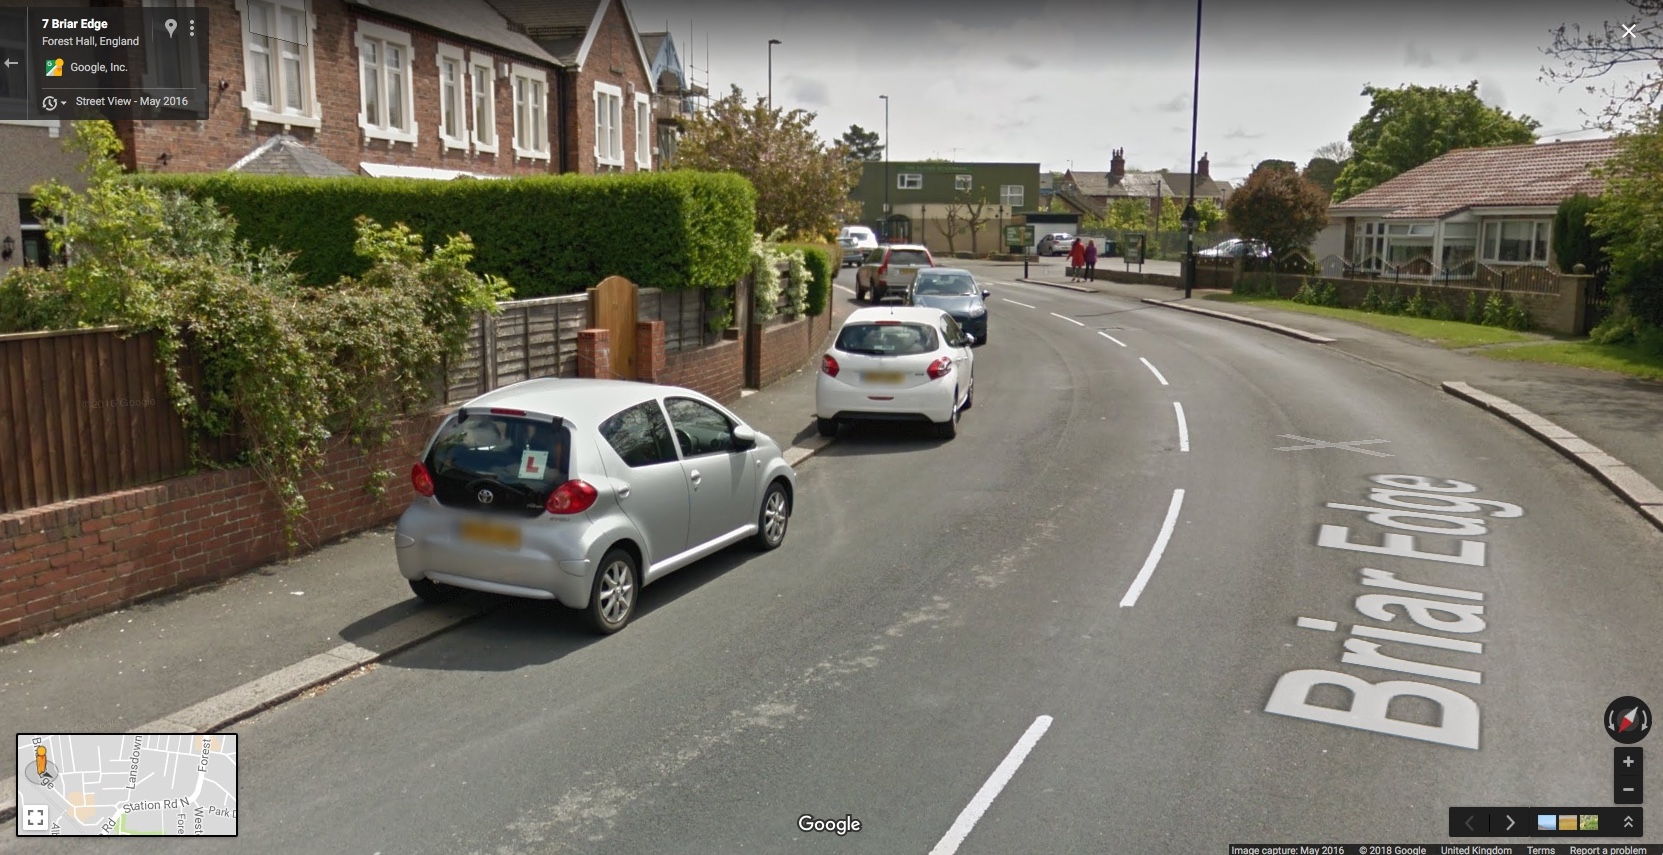 Picture showing pavement parking on Briar Edge